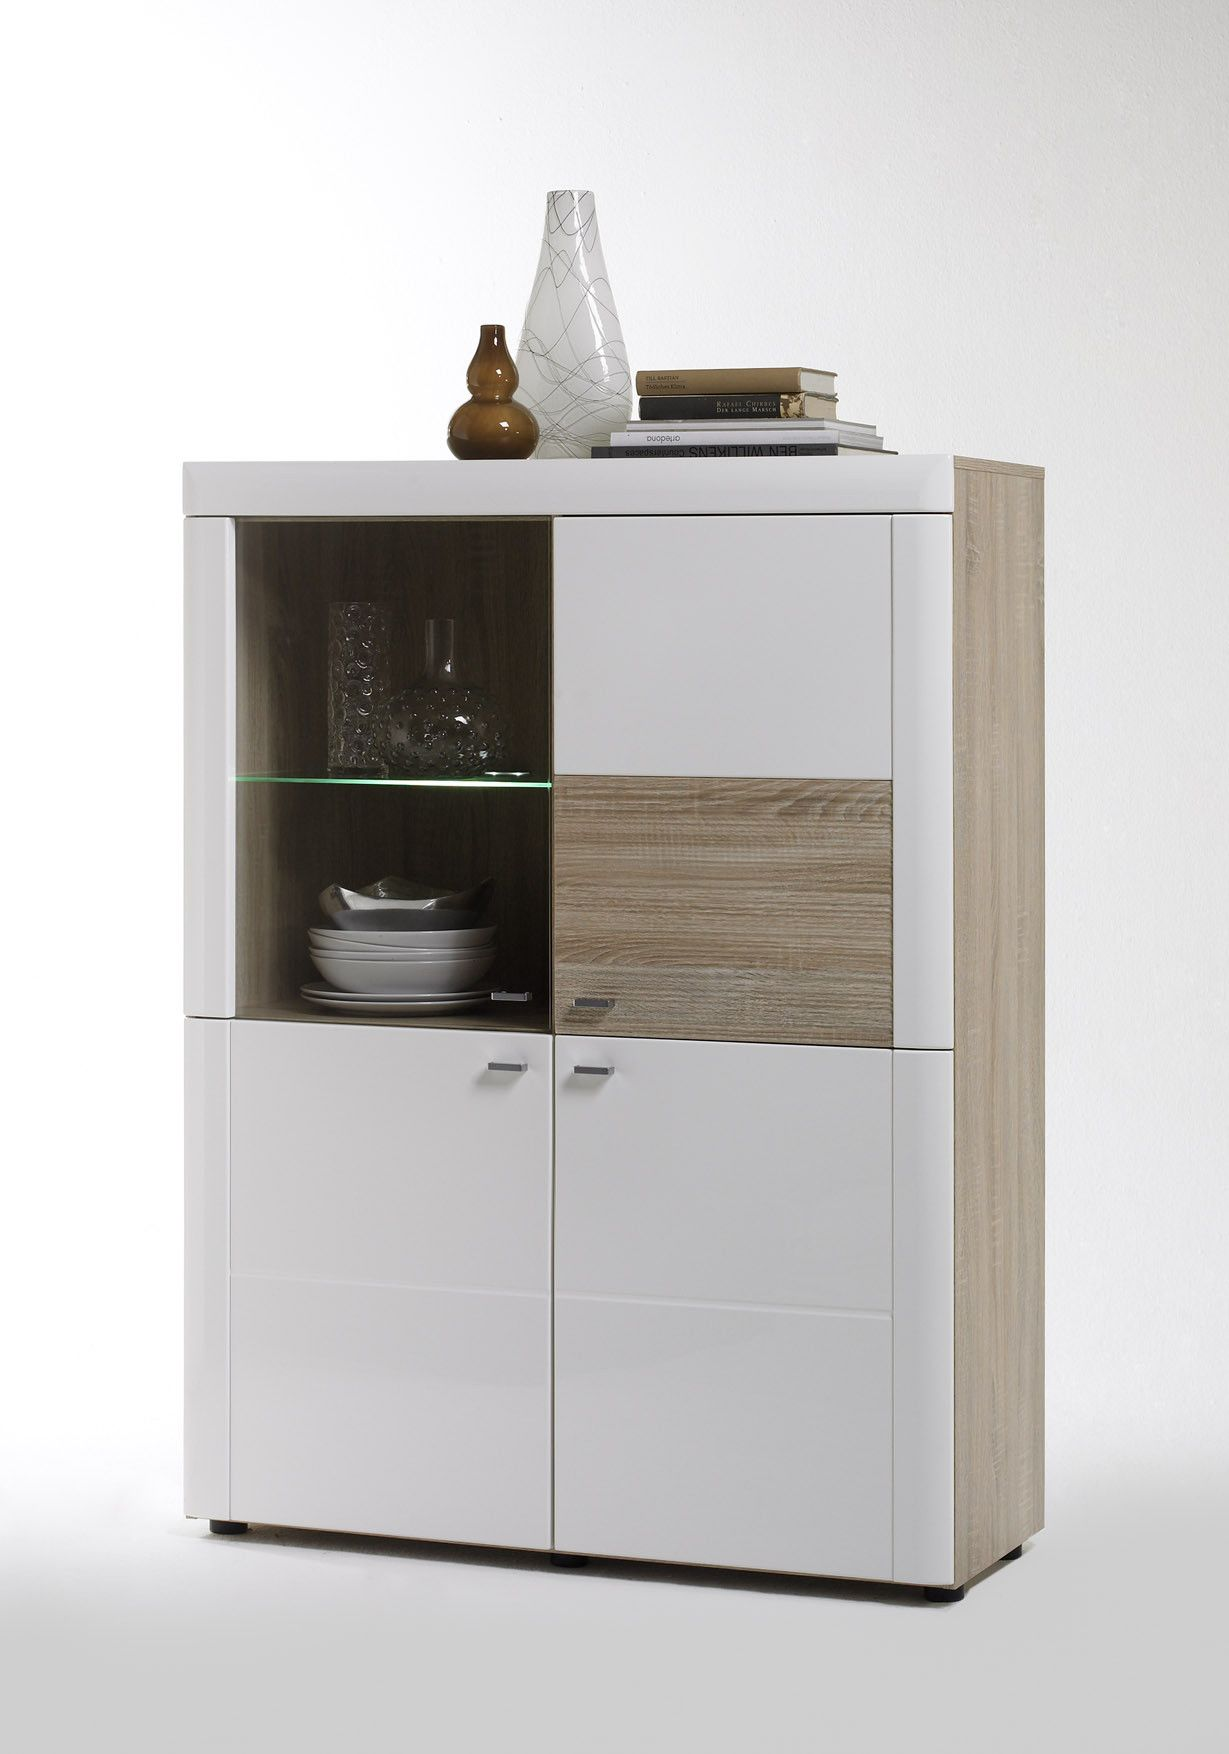 Pin By Santo Hady On Cabinet Styles Tall Cabinet Storage